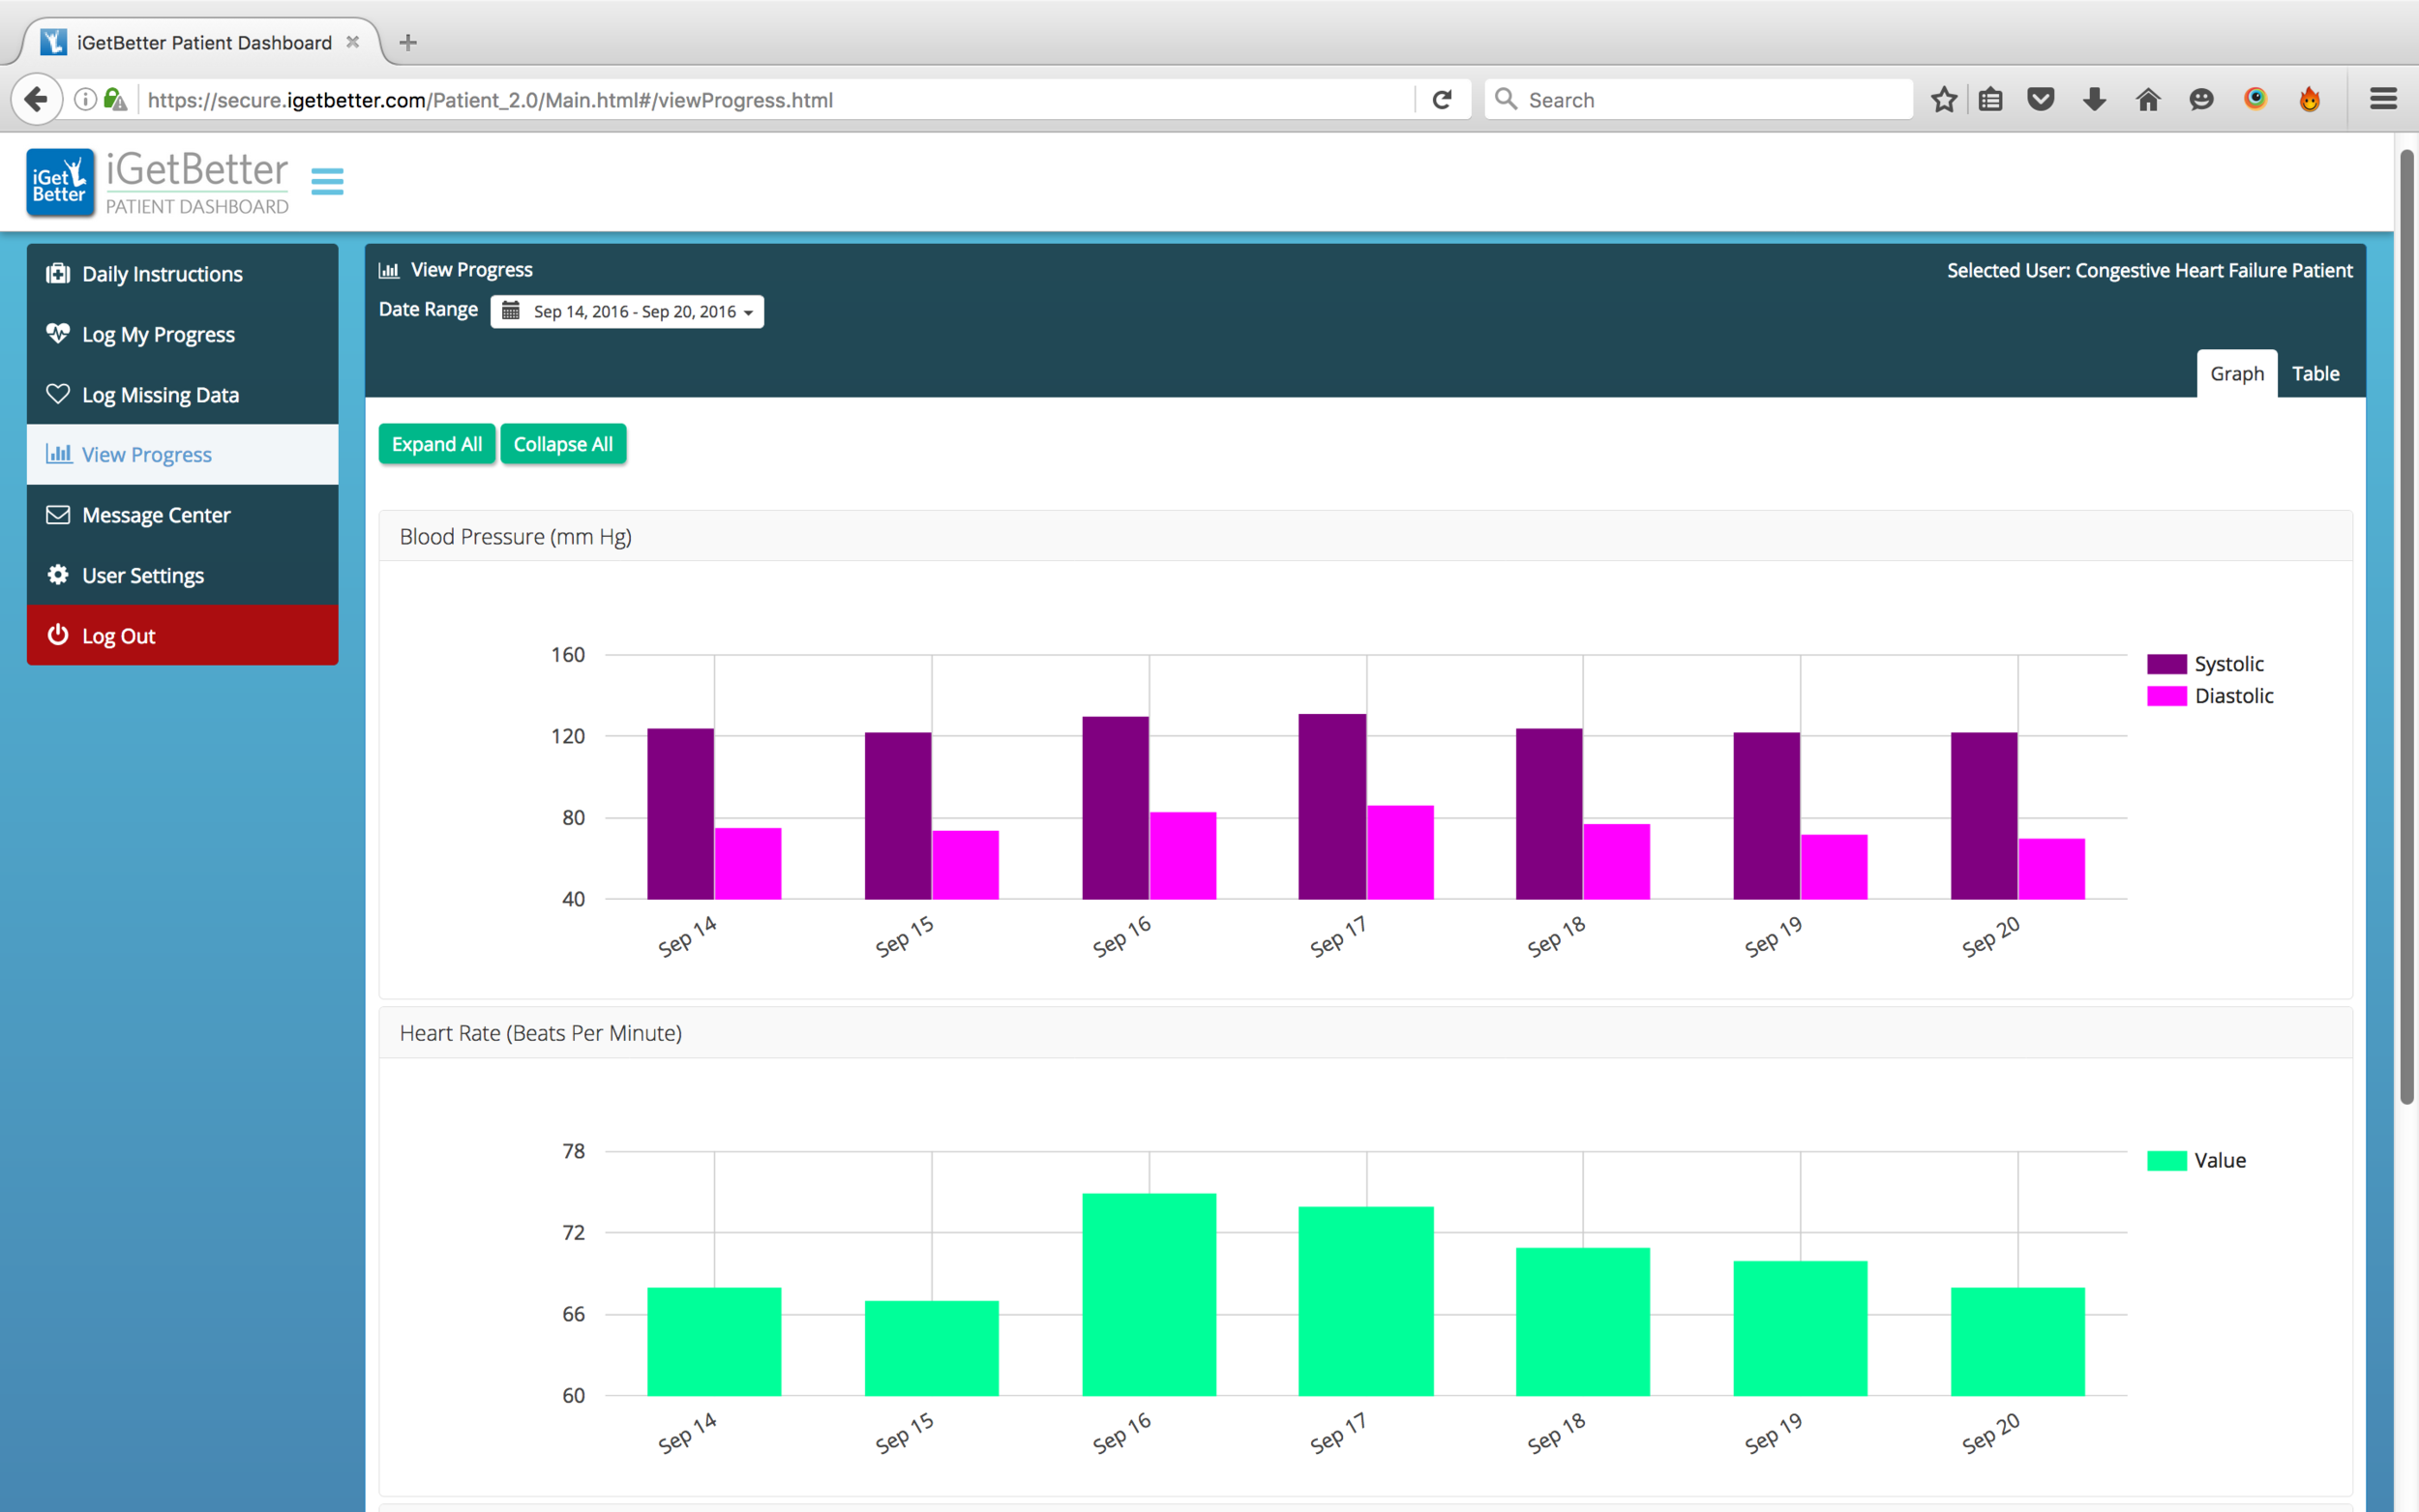 5. The patient can view their progress with simple graphs or via a table view